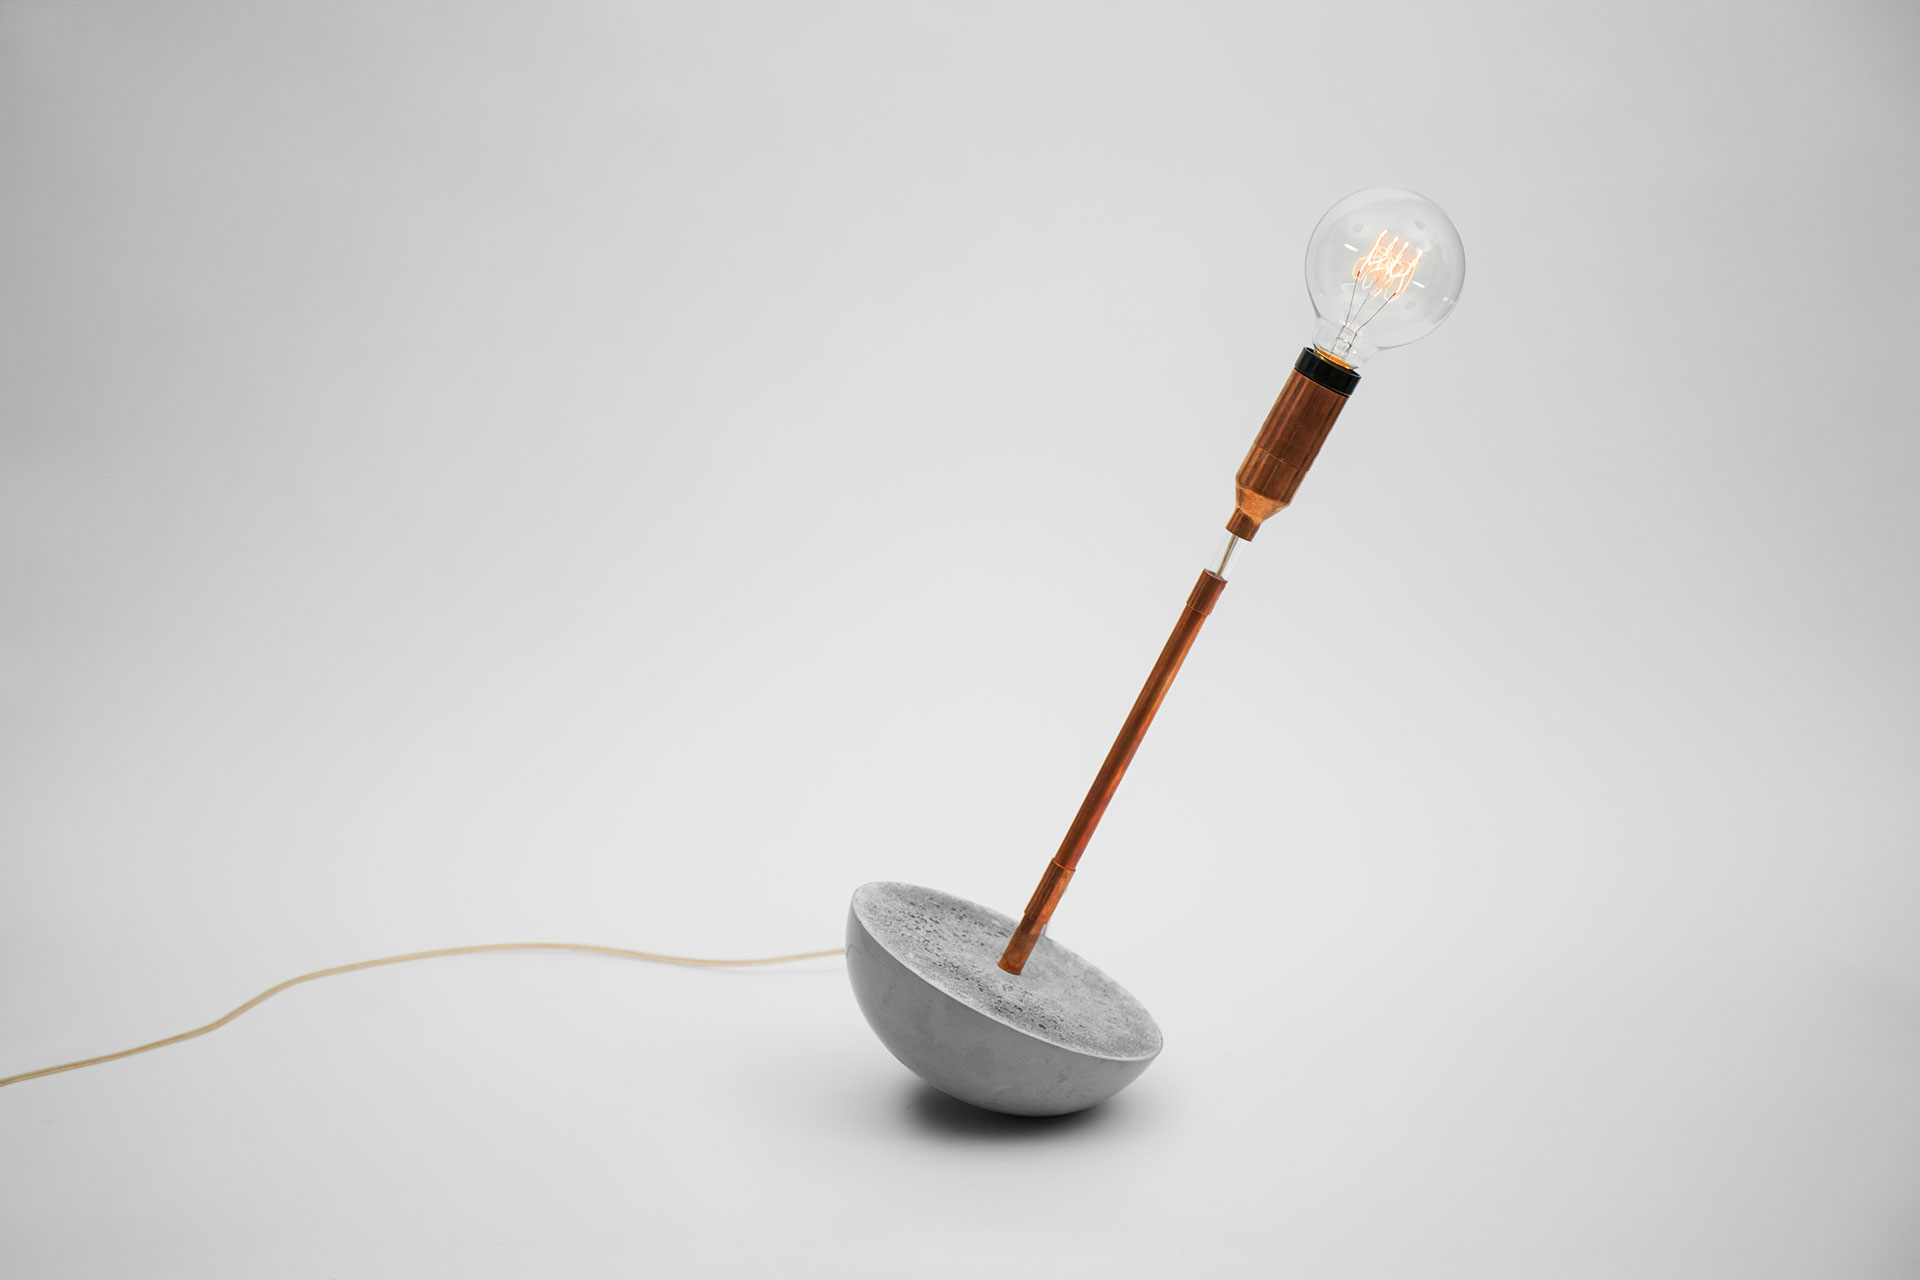 Fun design table lamp with magic touch dimmer and concrete base inspired by soviet era roly-poly toy